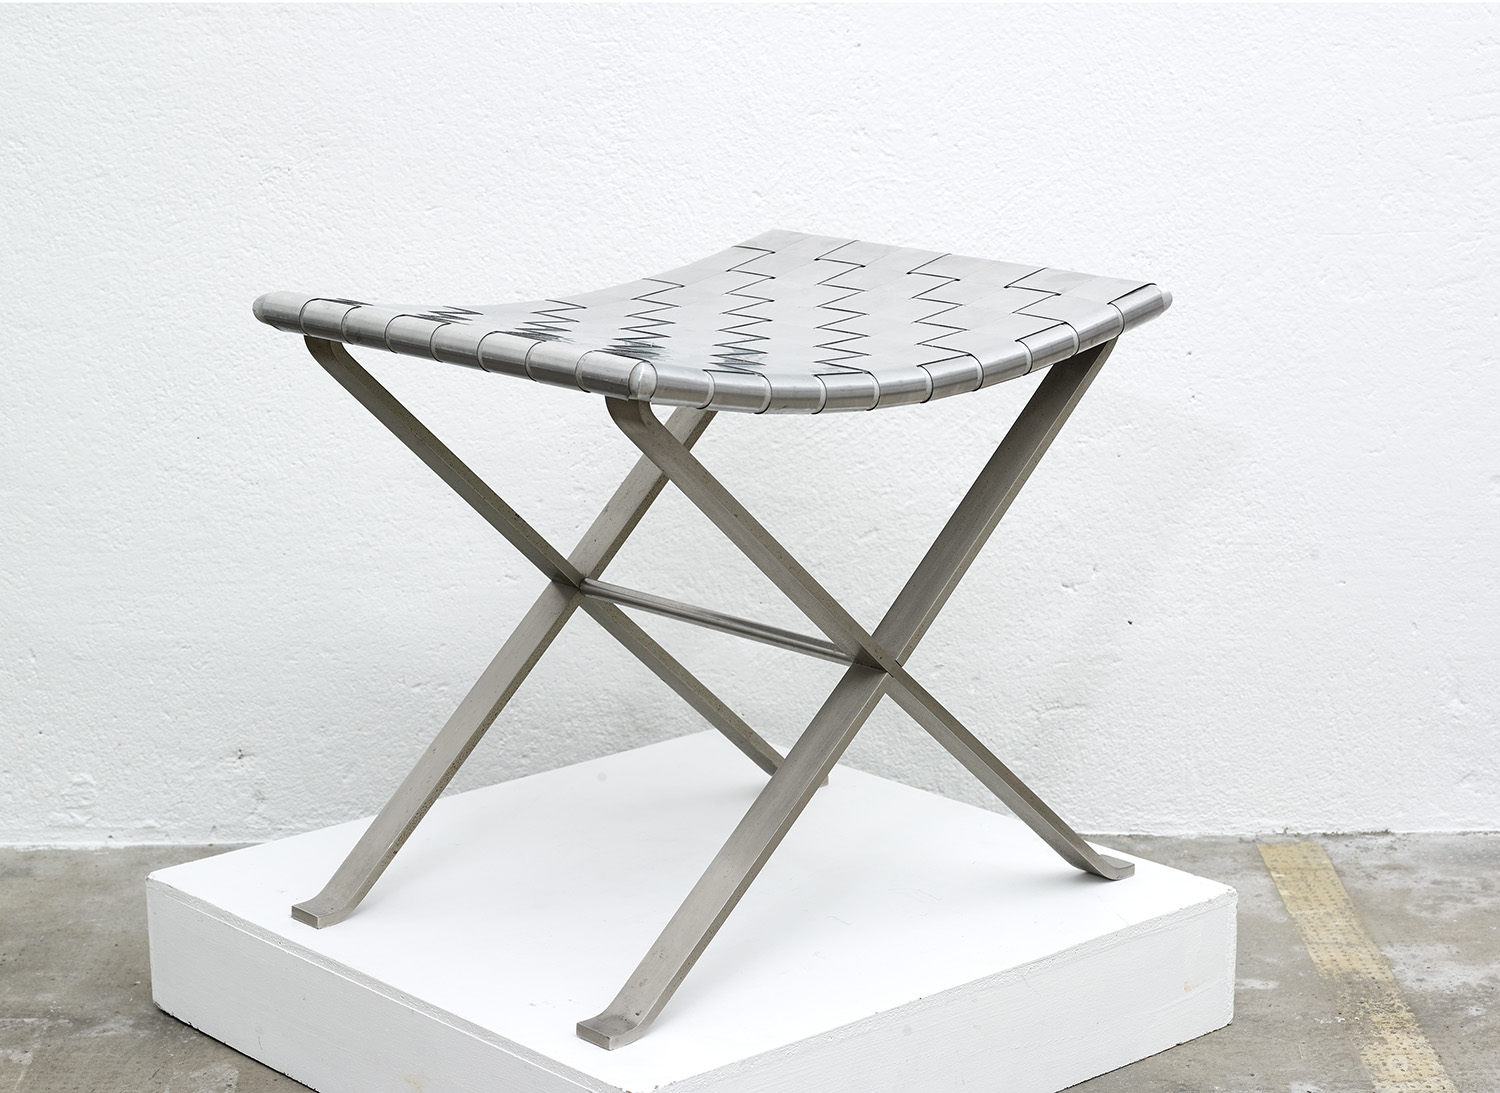 stool-in-stainless-steel-by-michel-pigneres-1970-image-02